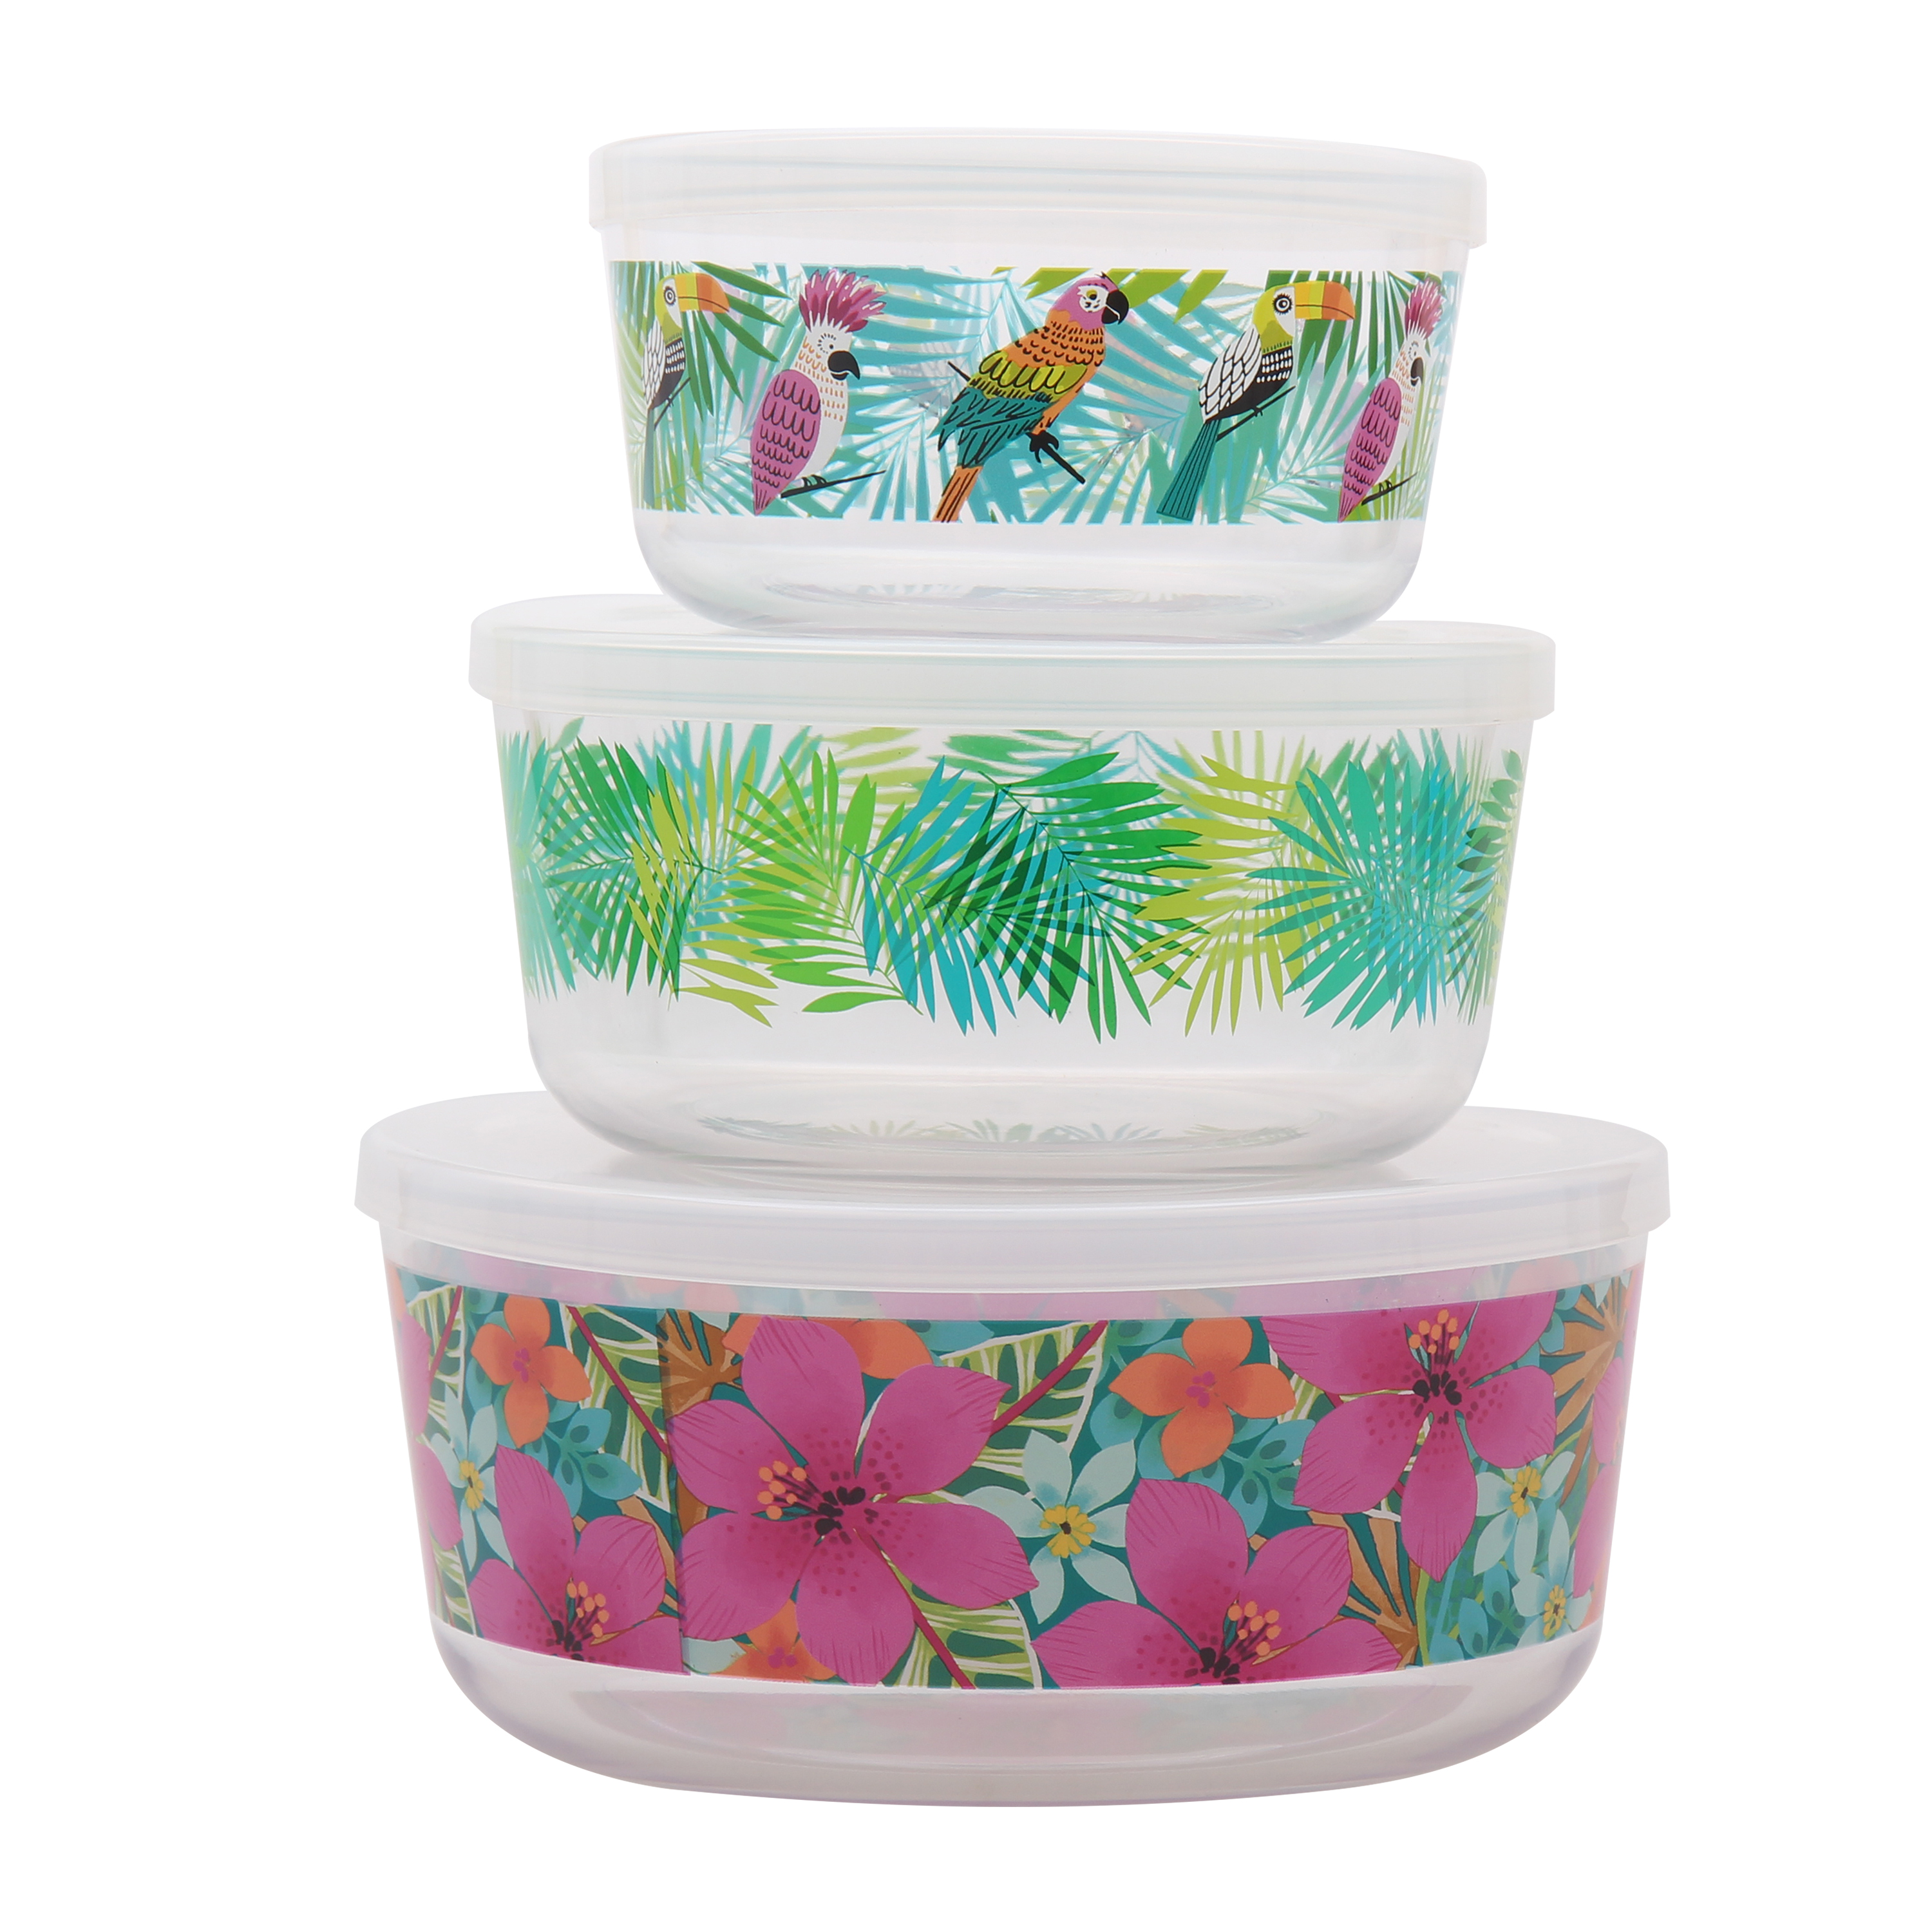 Mainstays Tropical 3 Piece Bowl Set